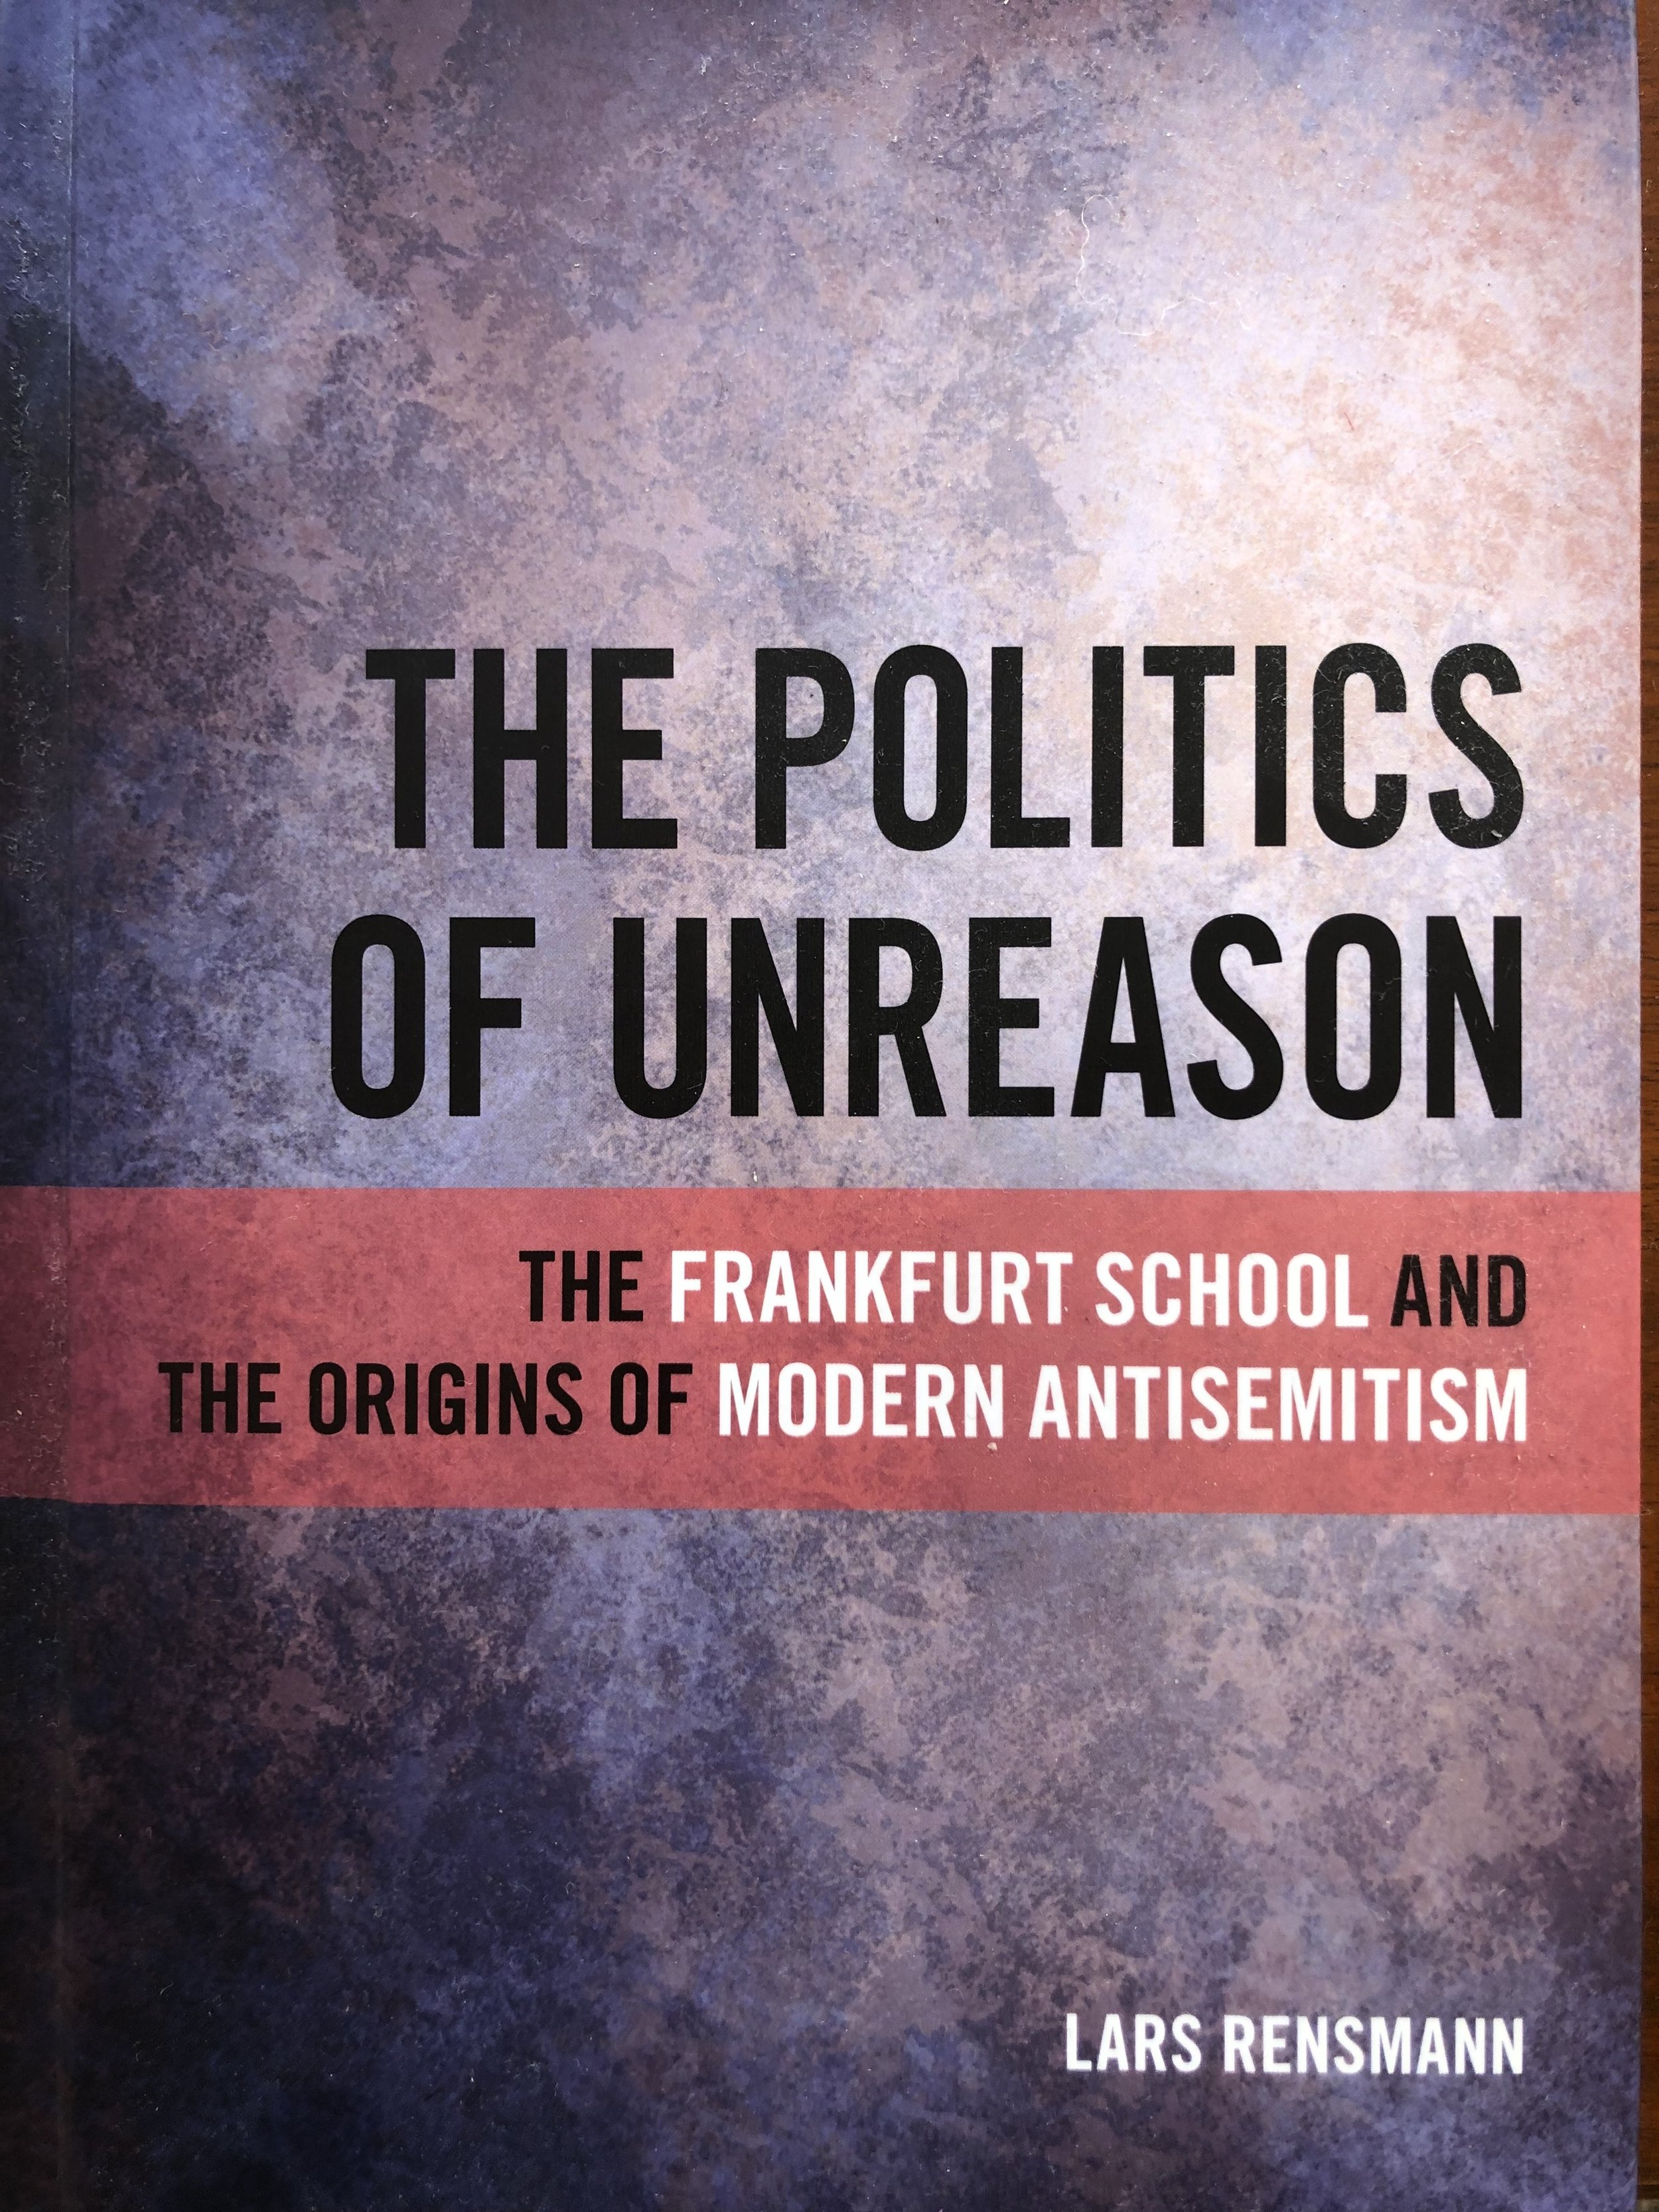 Just published: THE POLITICS OF UNREASON: THE FRANKFURT SCHOOL AND THE ORIGINS OF MODERN ANTISEMITISM (SUNY Press, 2017)